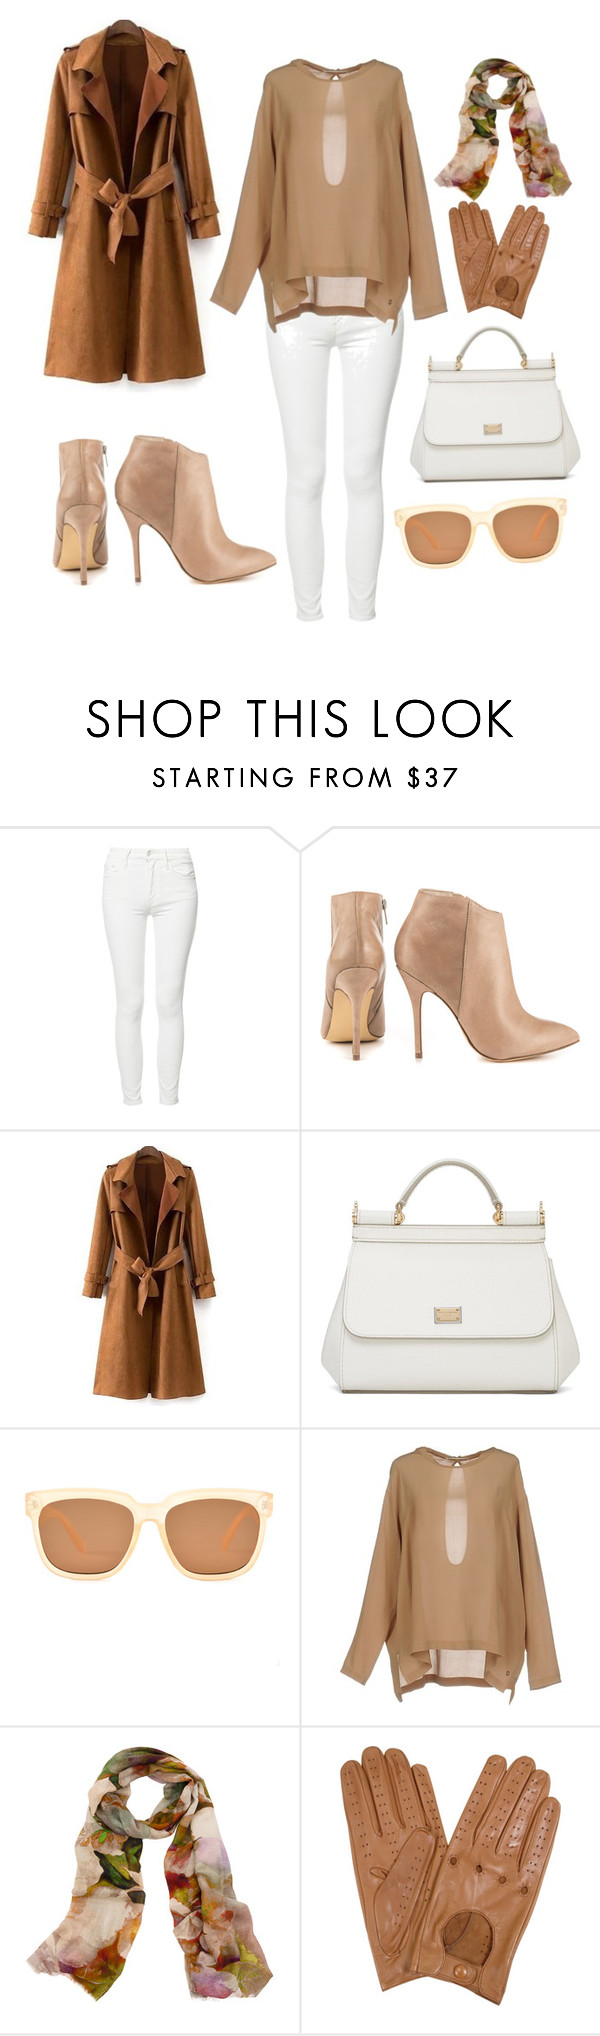 """""""Nudes"""" by u-babb ❤ liked on Polyvore featuring Mother, Steve Madden, Dolce&Gabbana, Ottod'Ame, Bindya and Forzieri"""